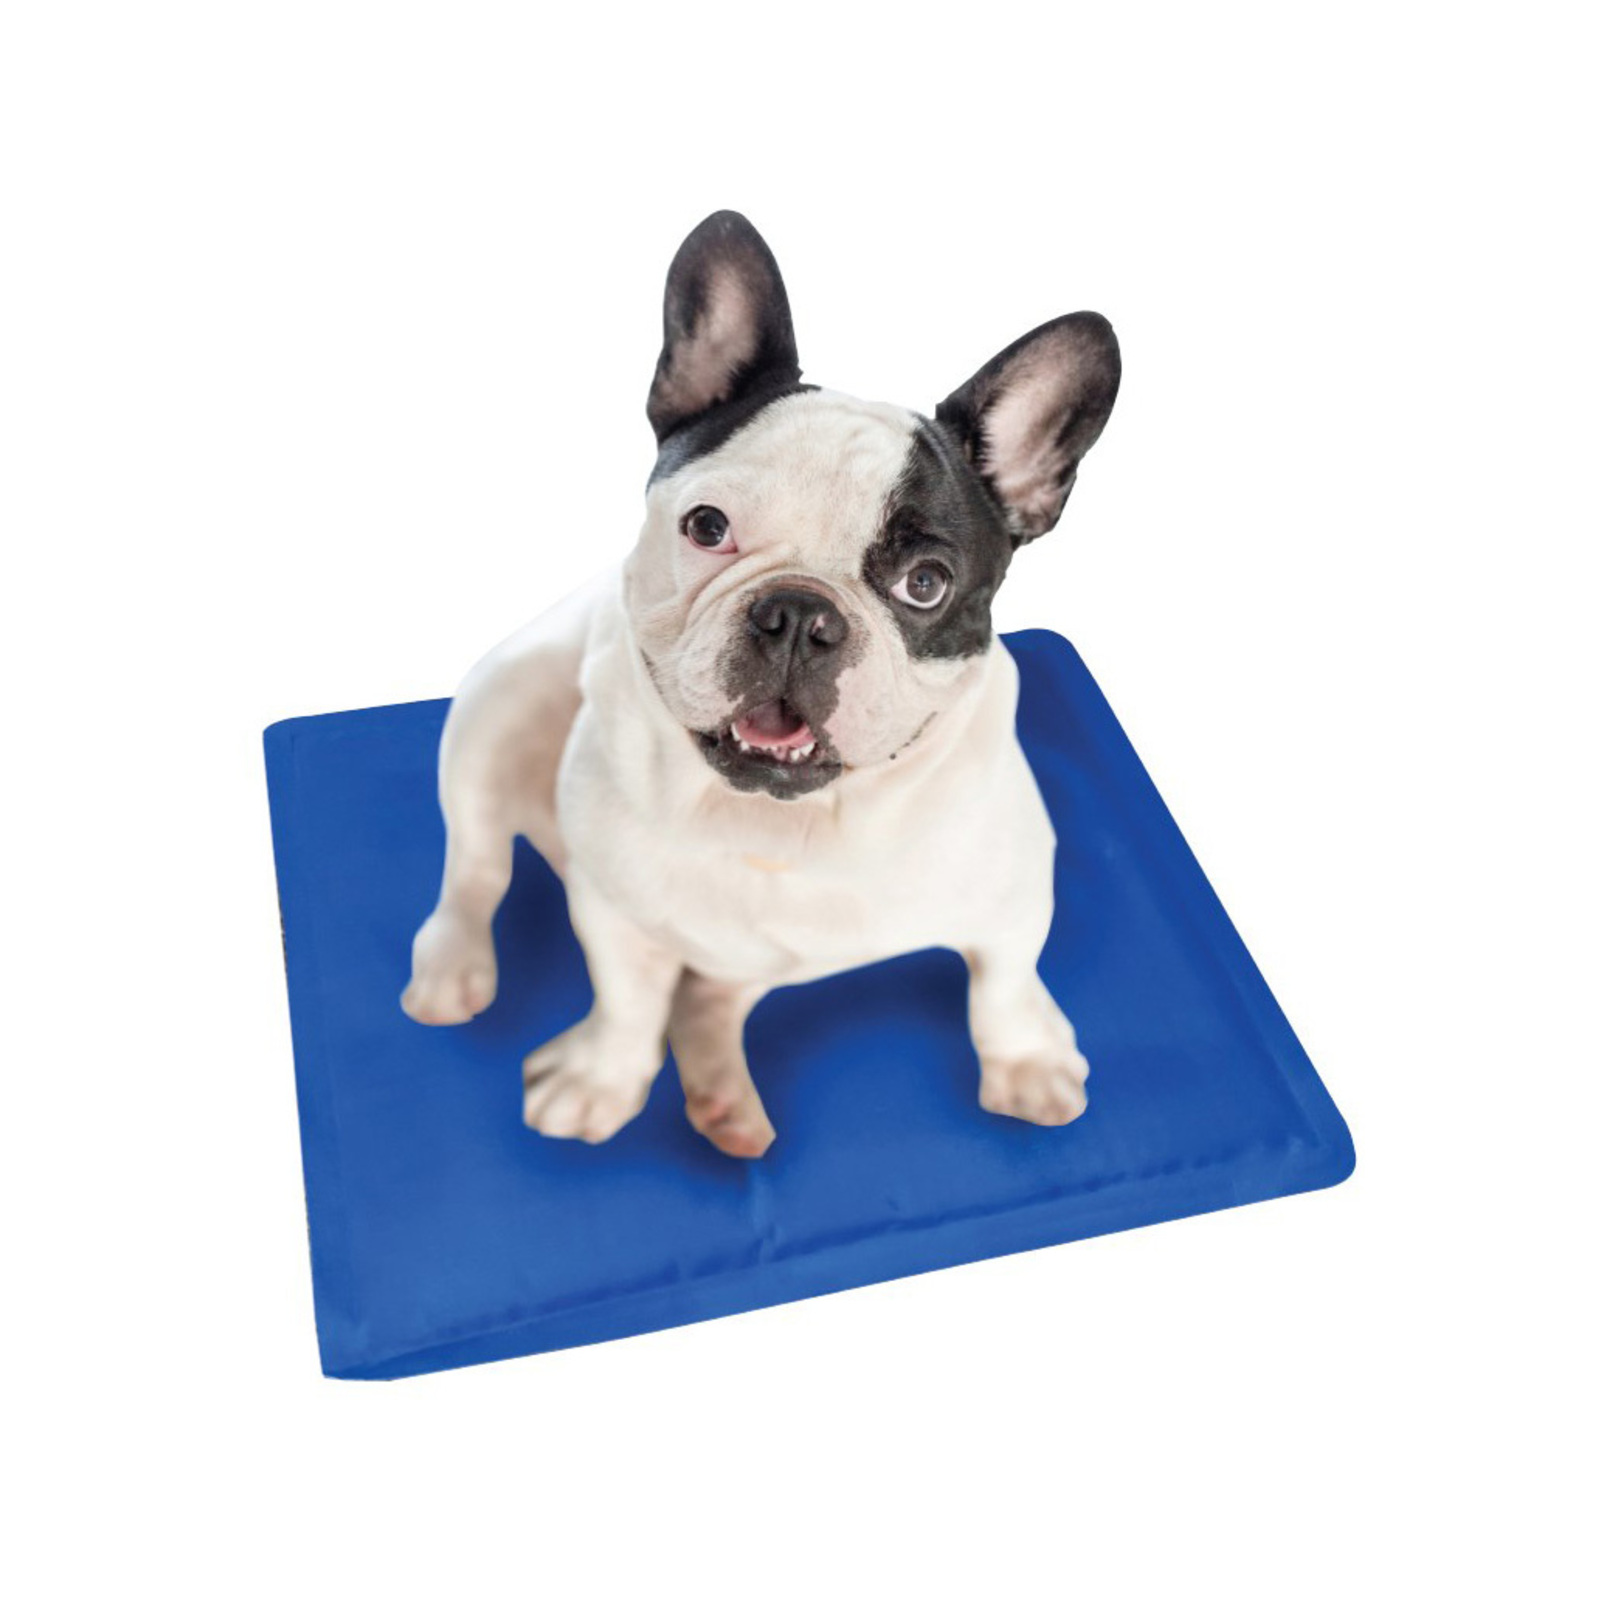 Paws & Claws 30cm Waterproof Pet/Dog/Cat Heating/Cooling Gel Mat/Pad/Cushion SM